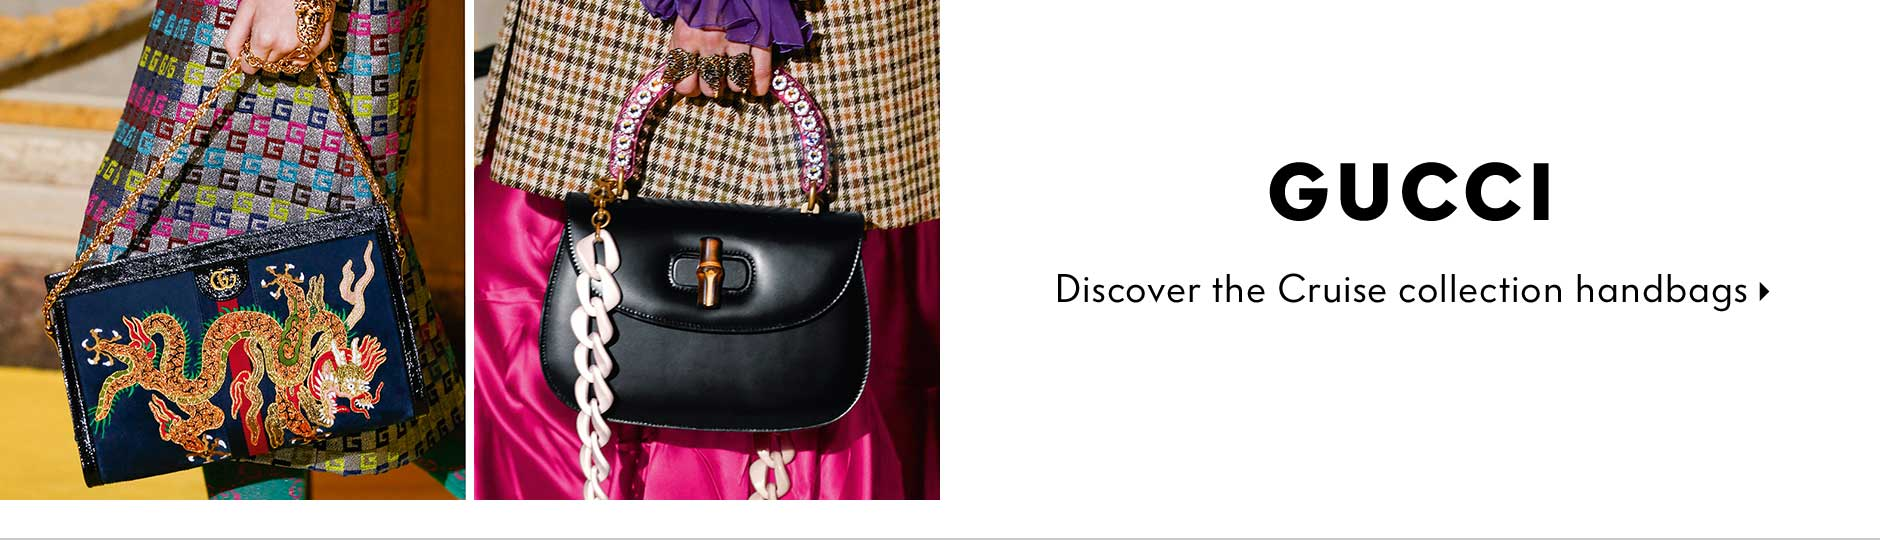 Gucci - Discover the Cruise collection handbags